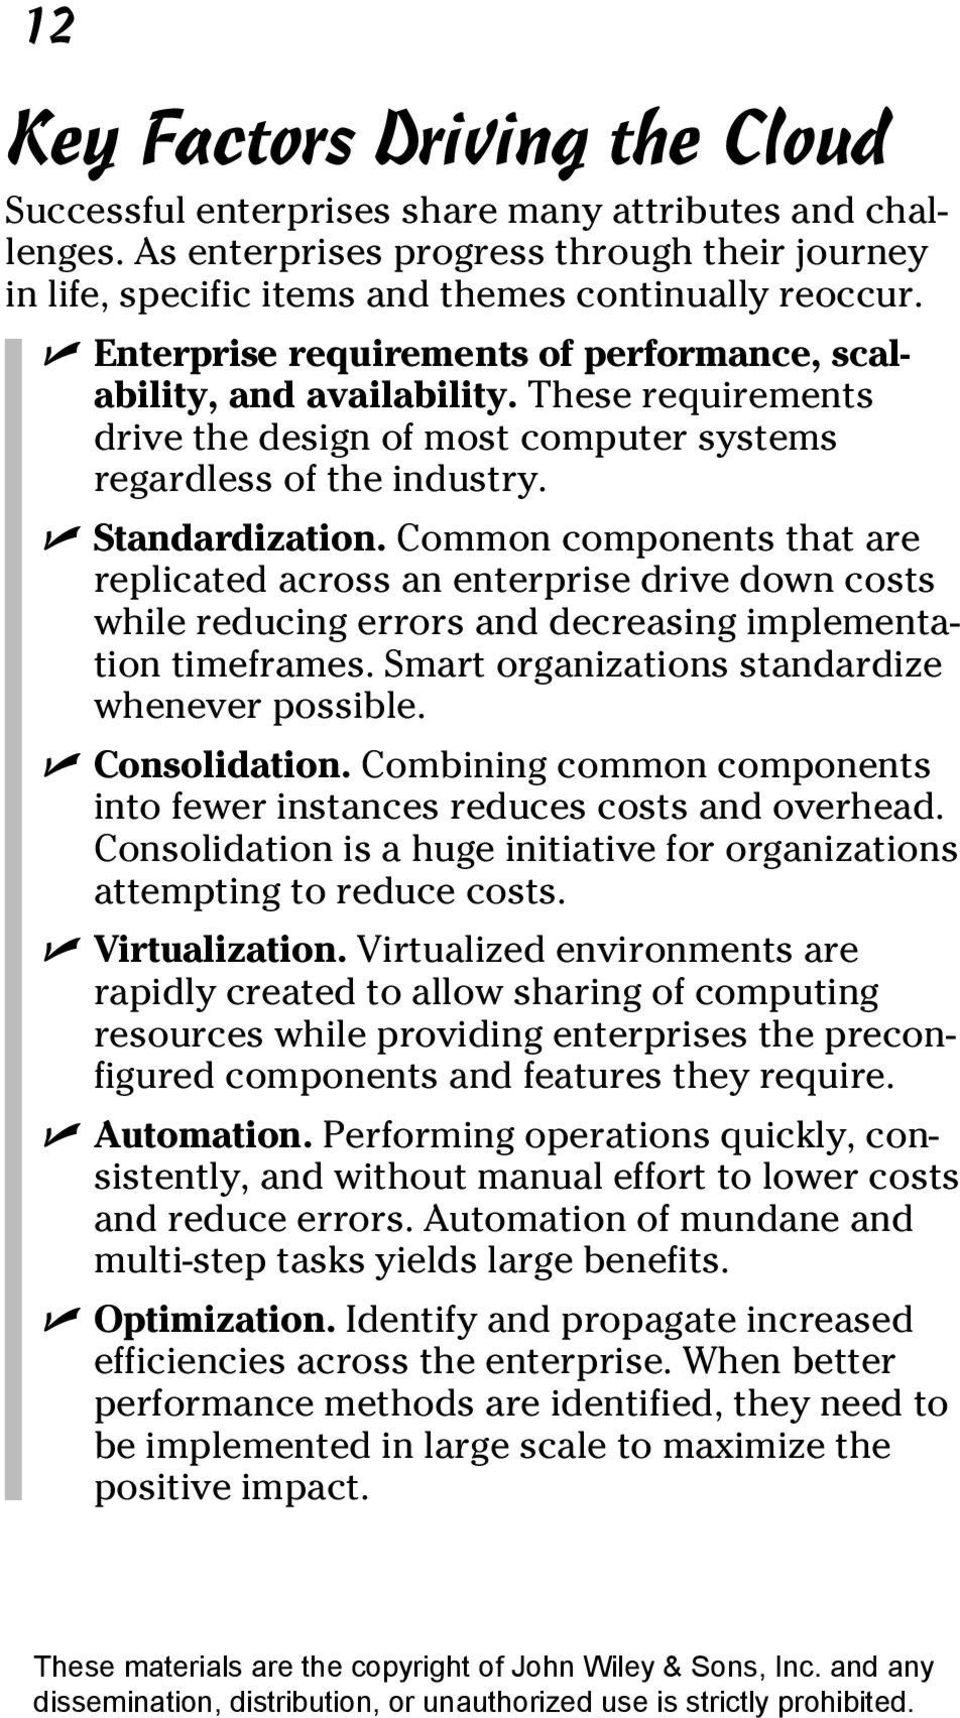 Common components that are replicated across an enterprise drive down costs while reducing errors and decreasing implementation timeframes. Smart organizations standardize whenever possible.